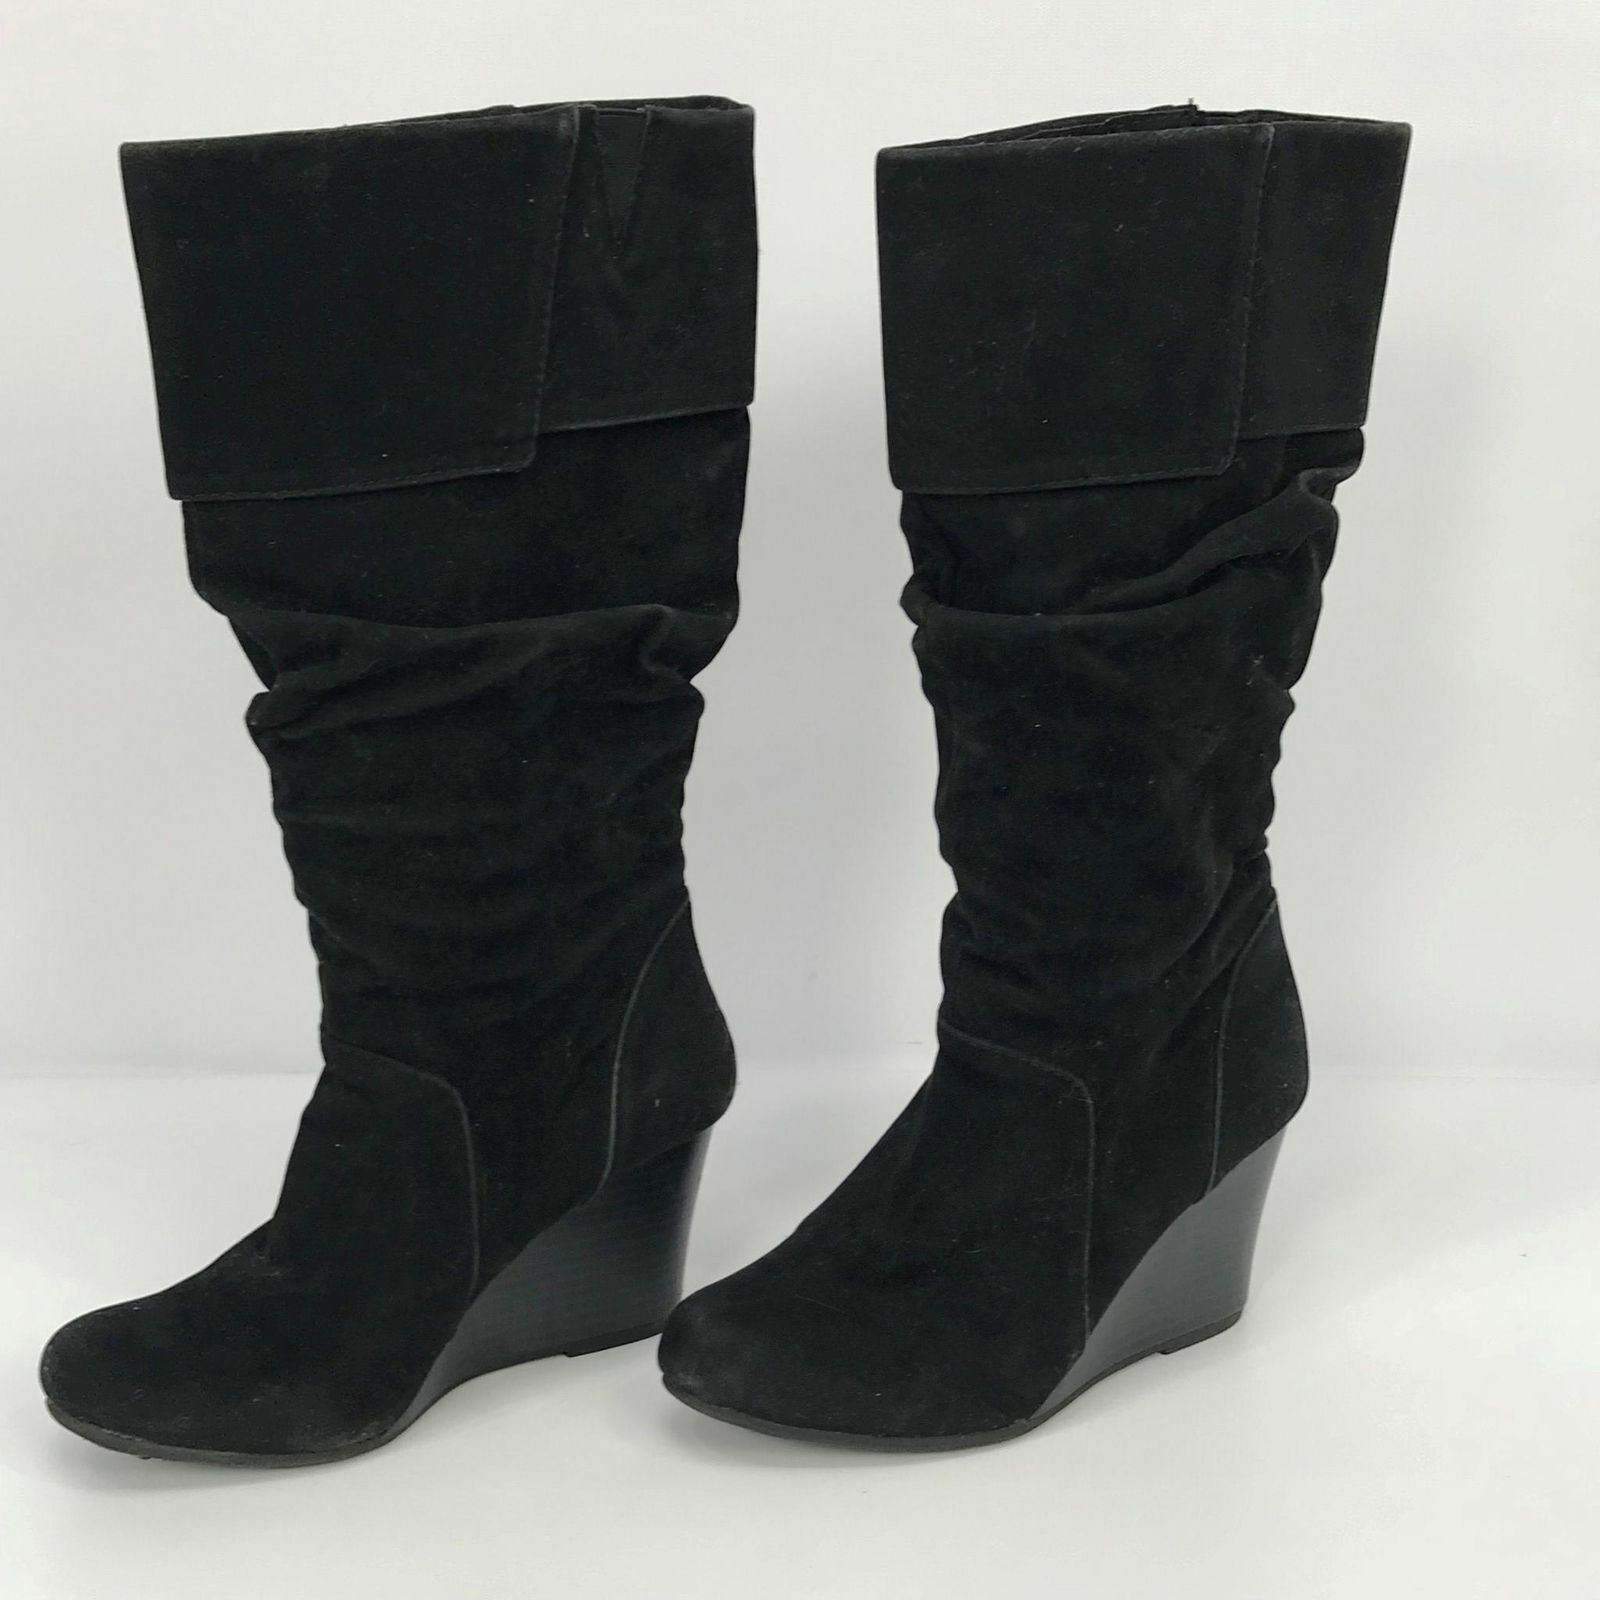 Size 7 Womens Boots Round Black Knee High Slouch Round Boots Toe Wedge Heels d737c1